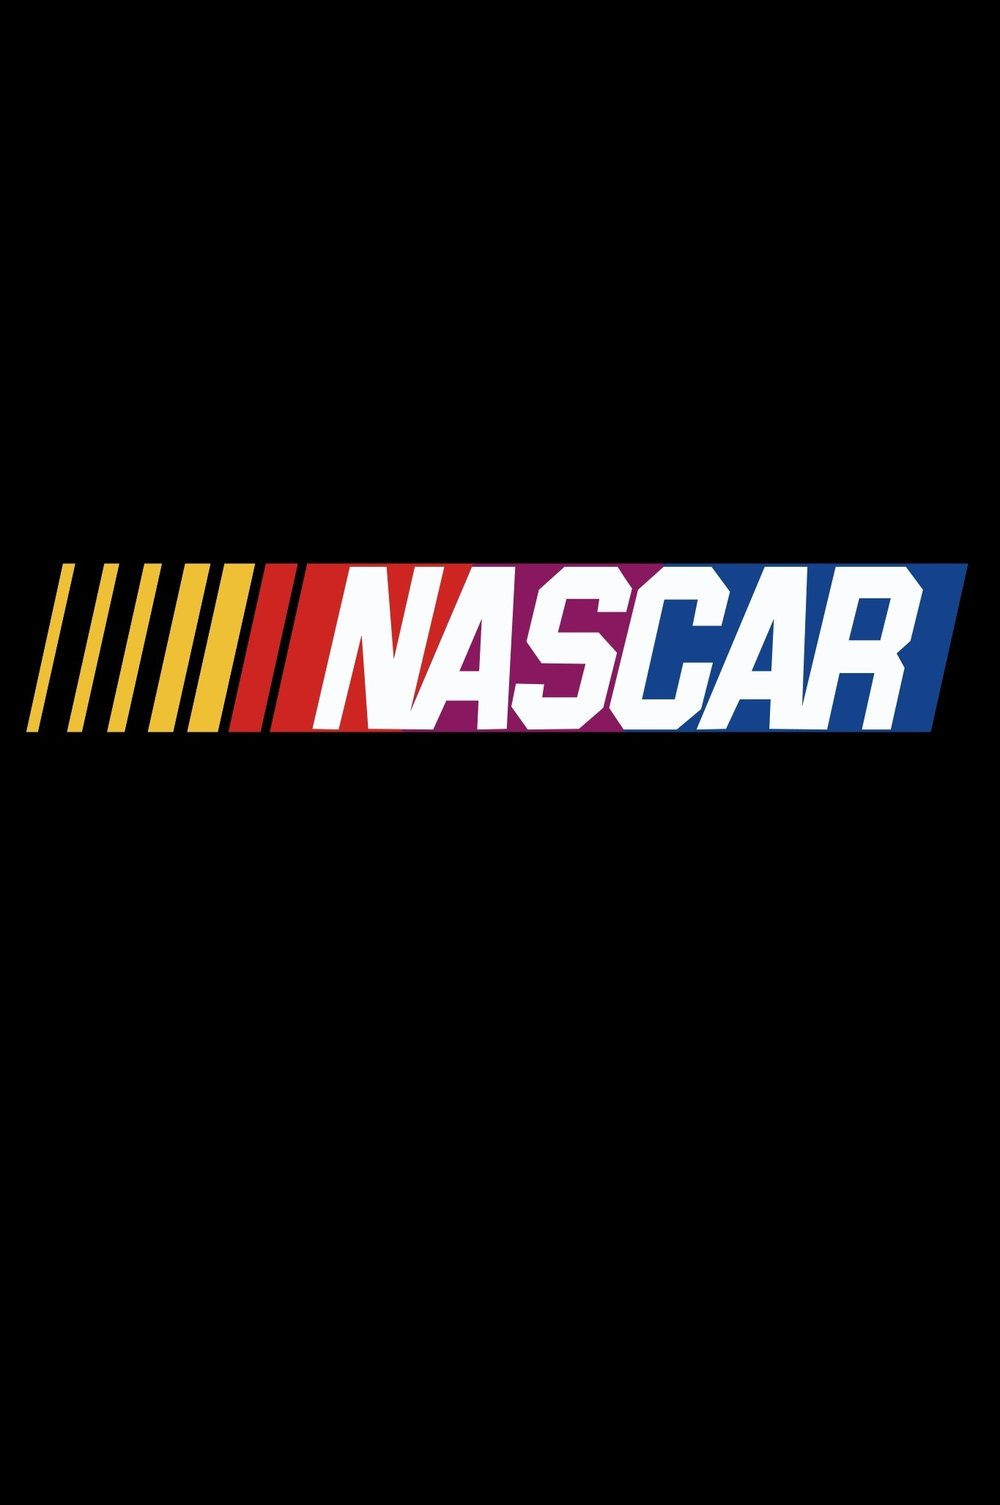 Color-of-the-NASCAR-Logo.jpg